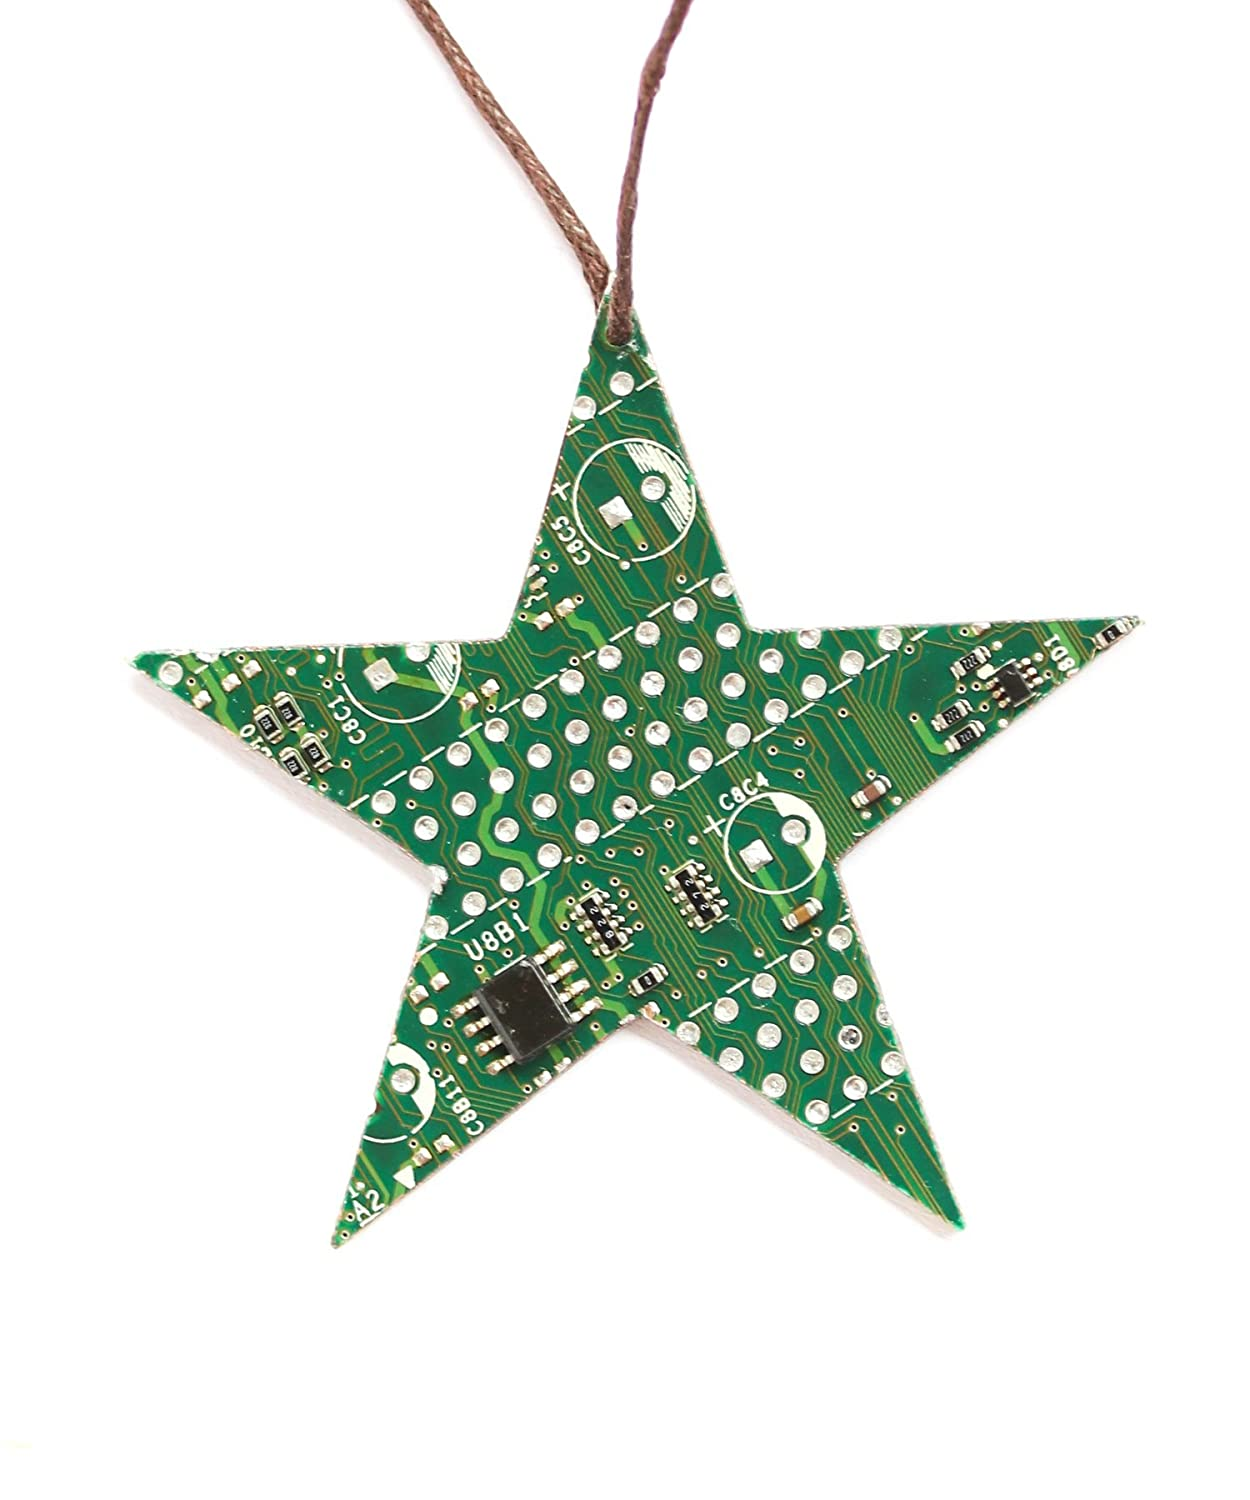 Amazon.com: Green Star Christmas Tree Ornament, recycled circuit ...